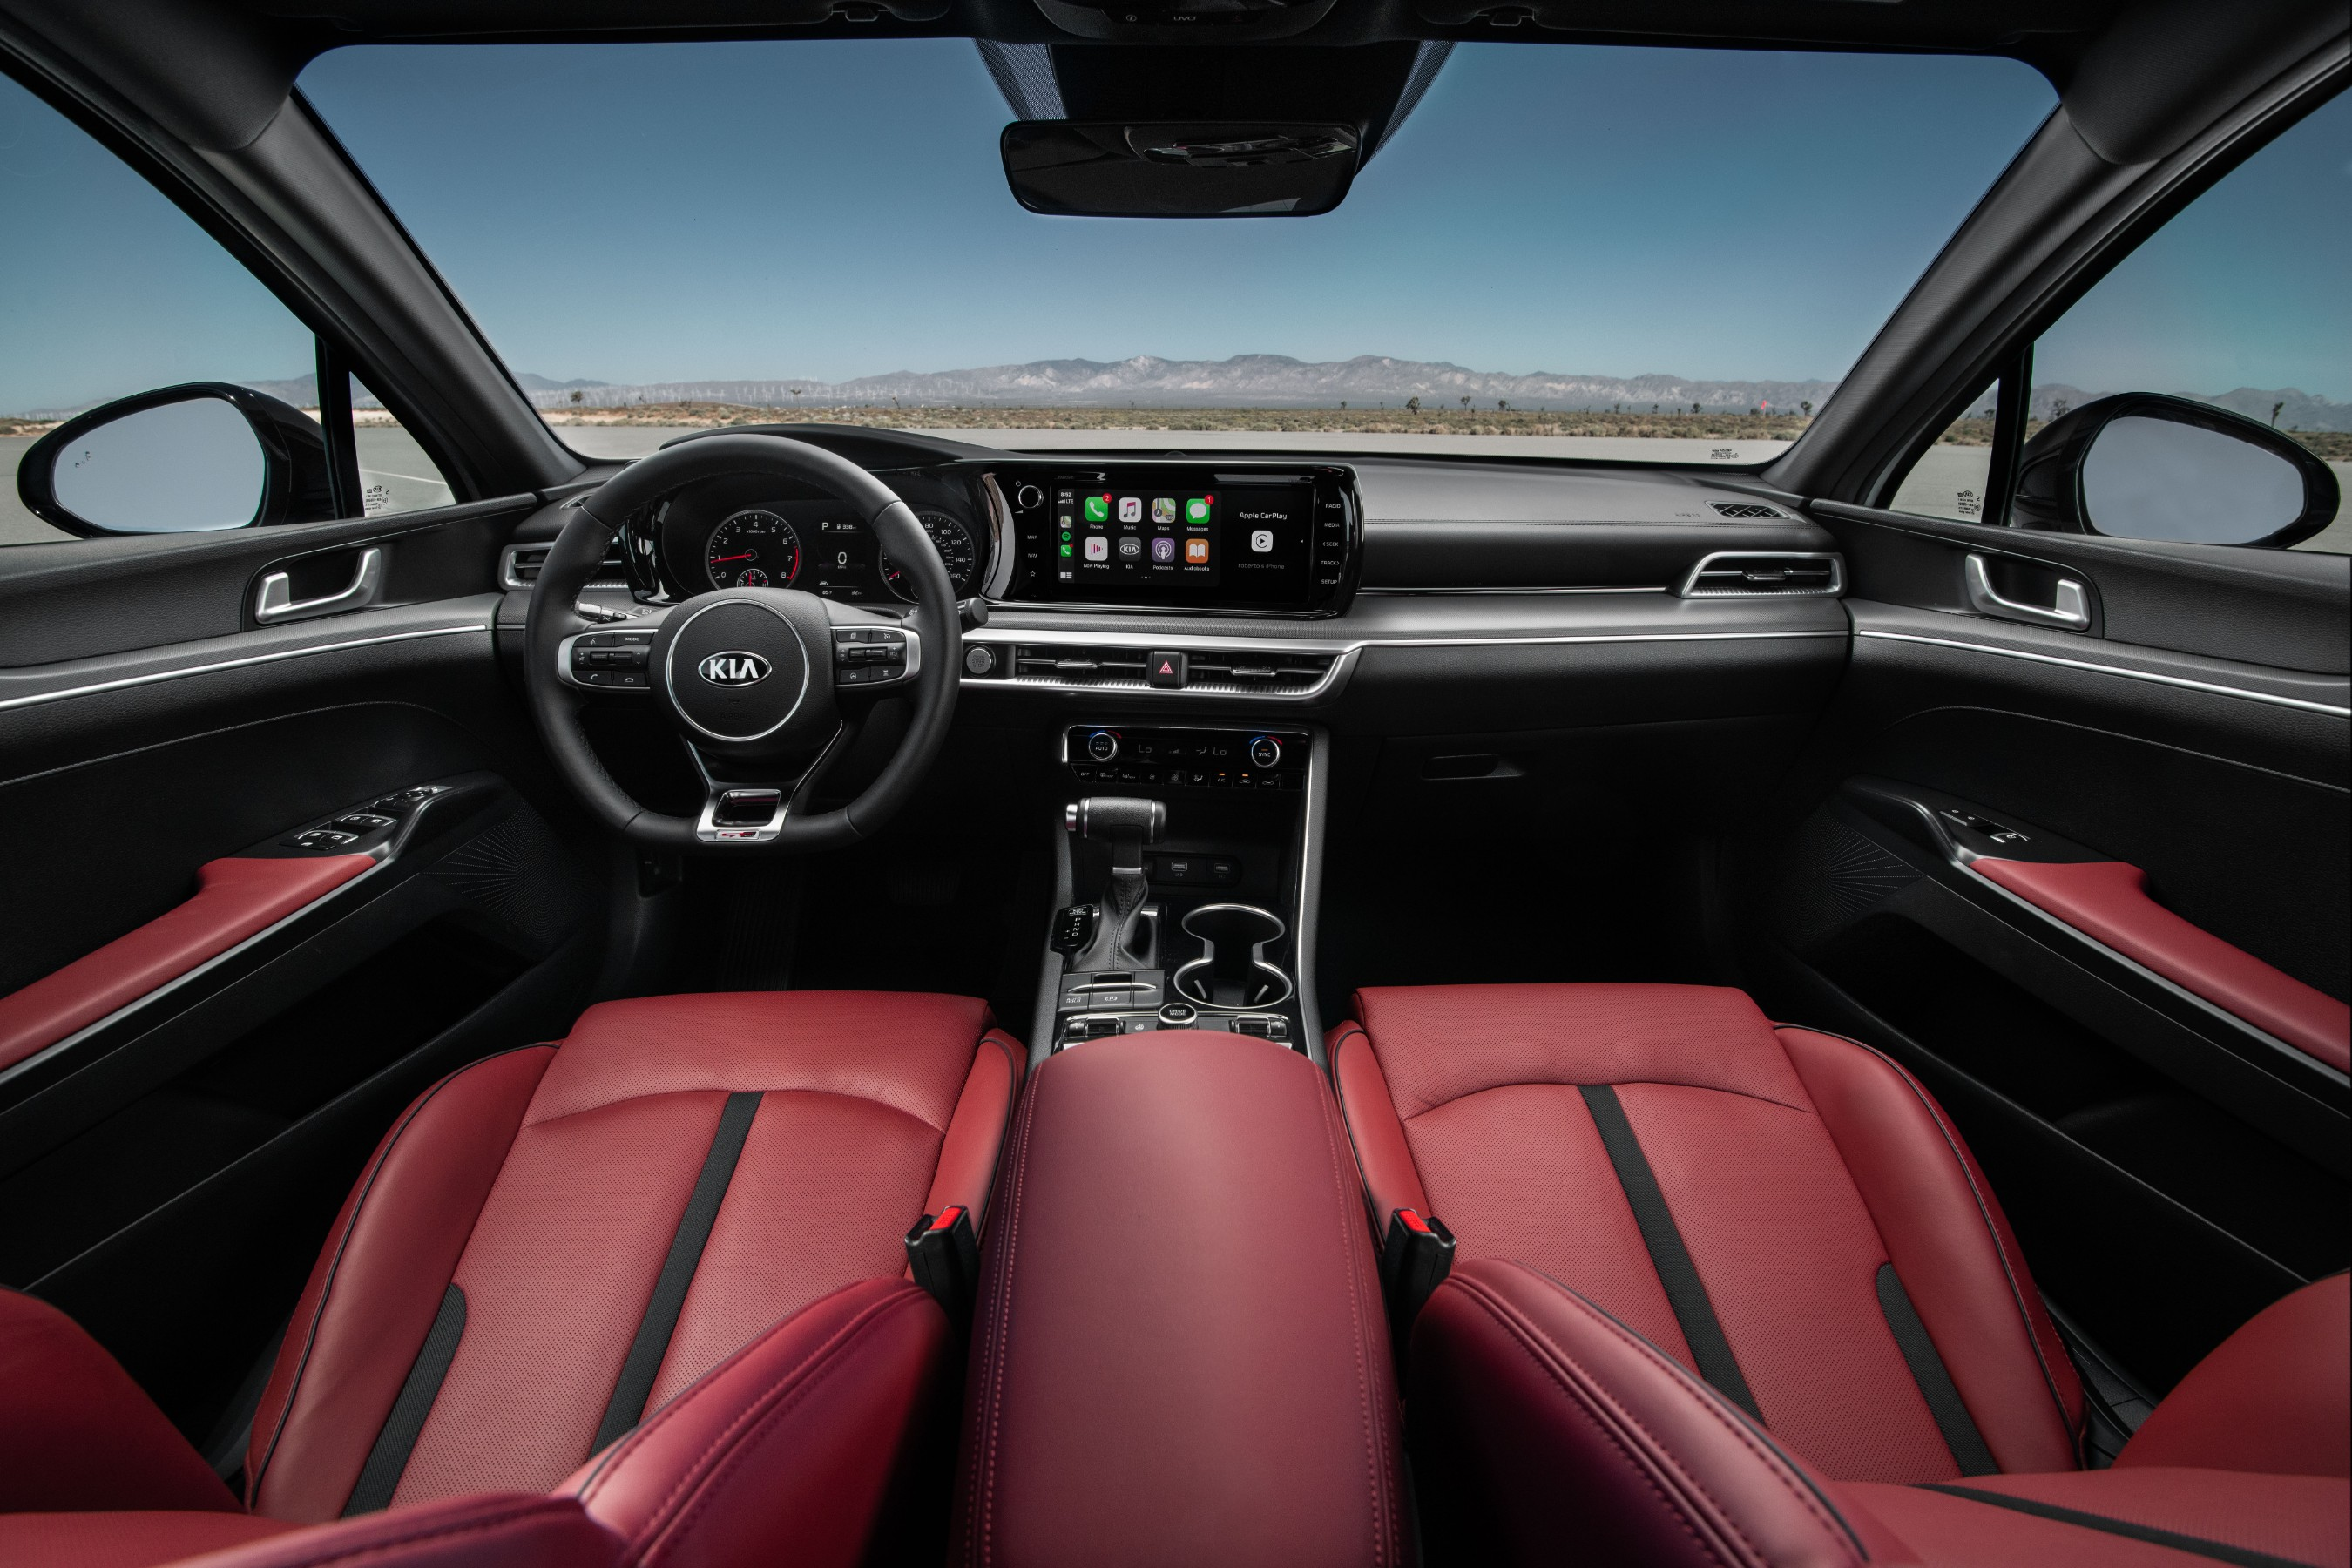 A driver-centric cabin offers deeply bolstered seats, advanced technology and is available in sporty red leatherette.